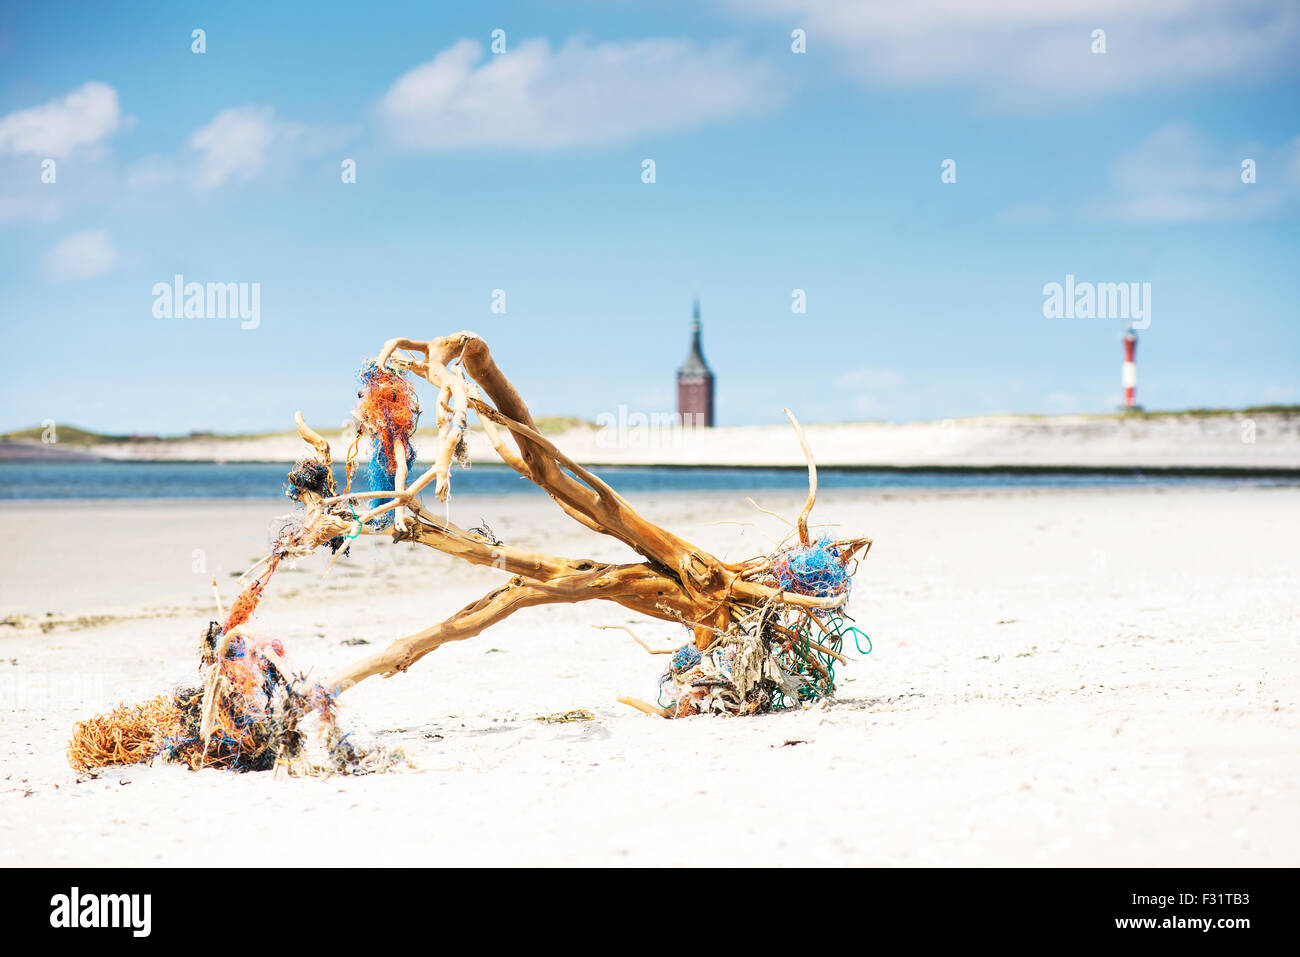 Driftwood with fishing nets logs on beach, Wangerooge, East Frisian Islands, Germany - Stock Image